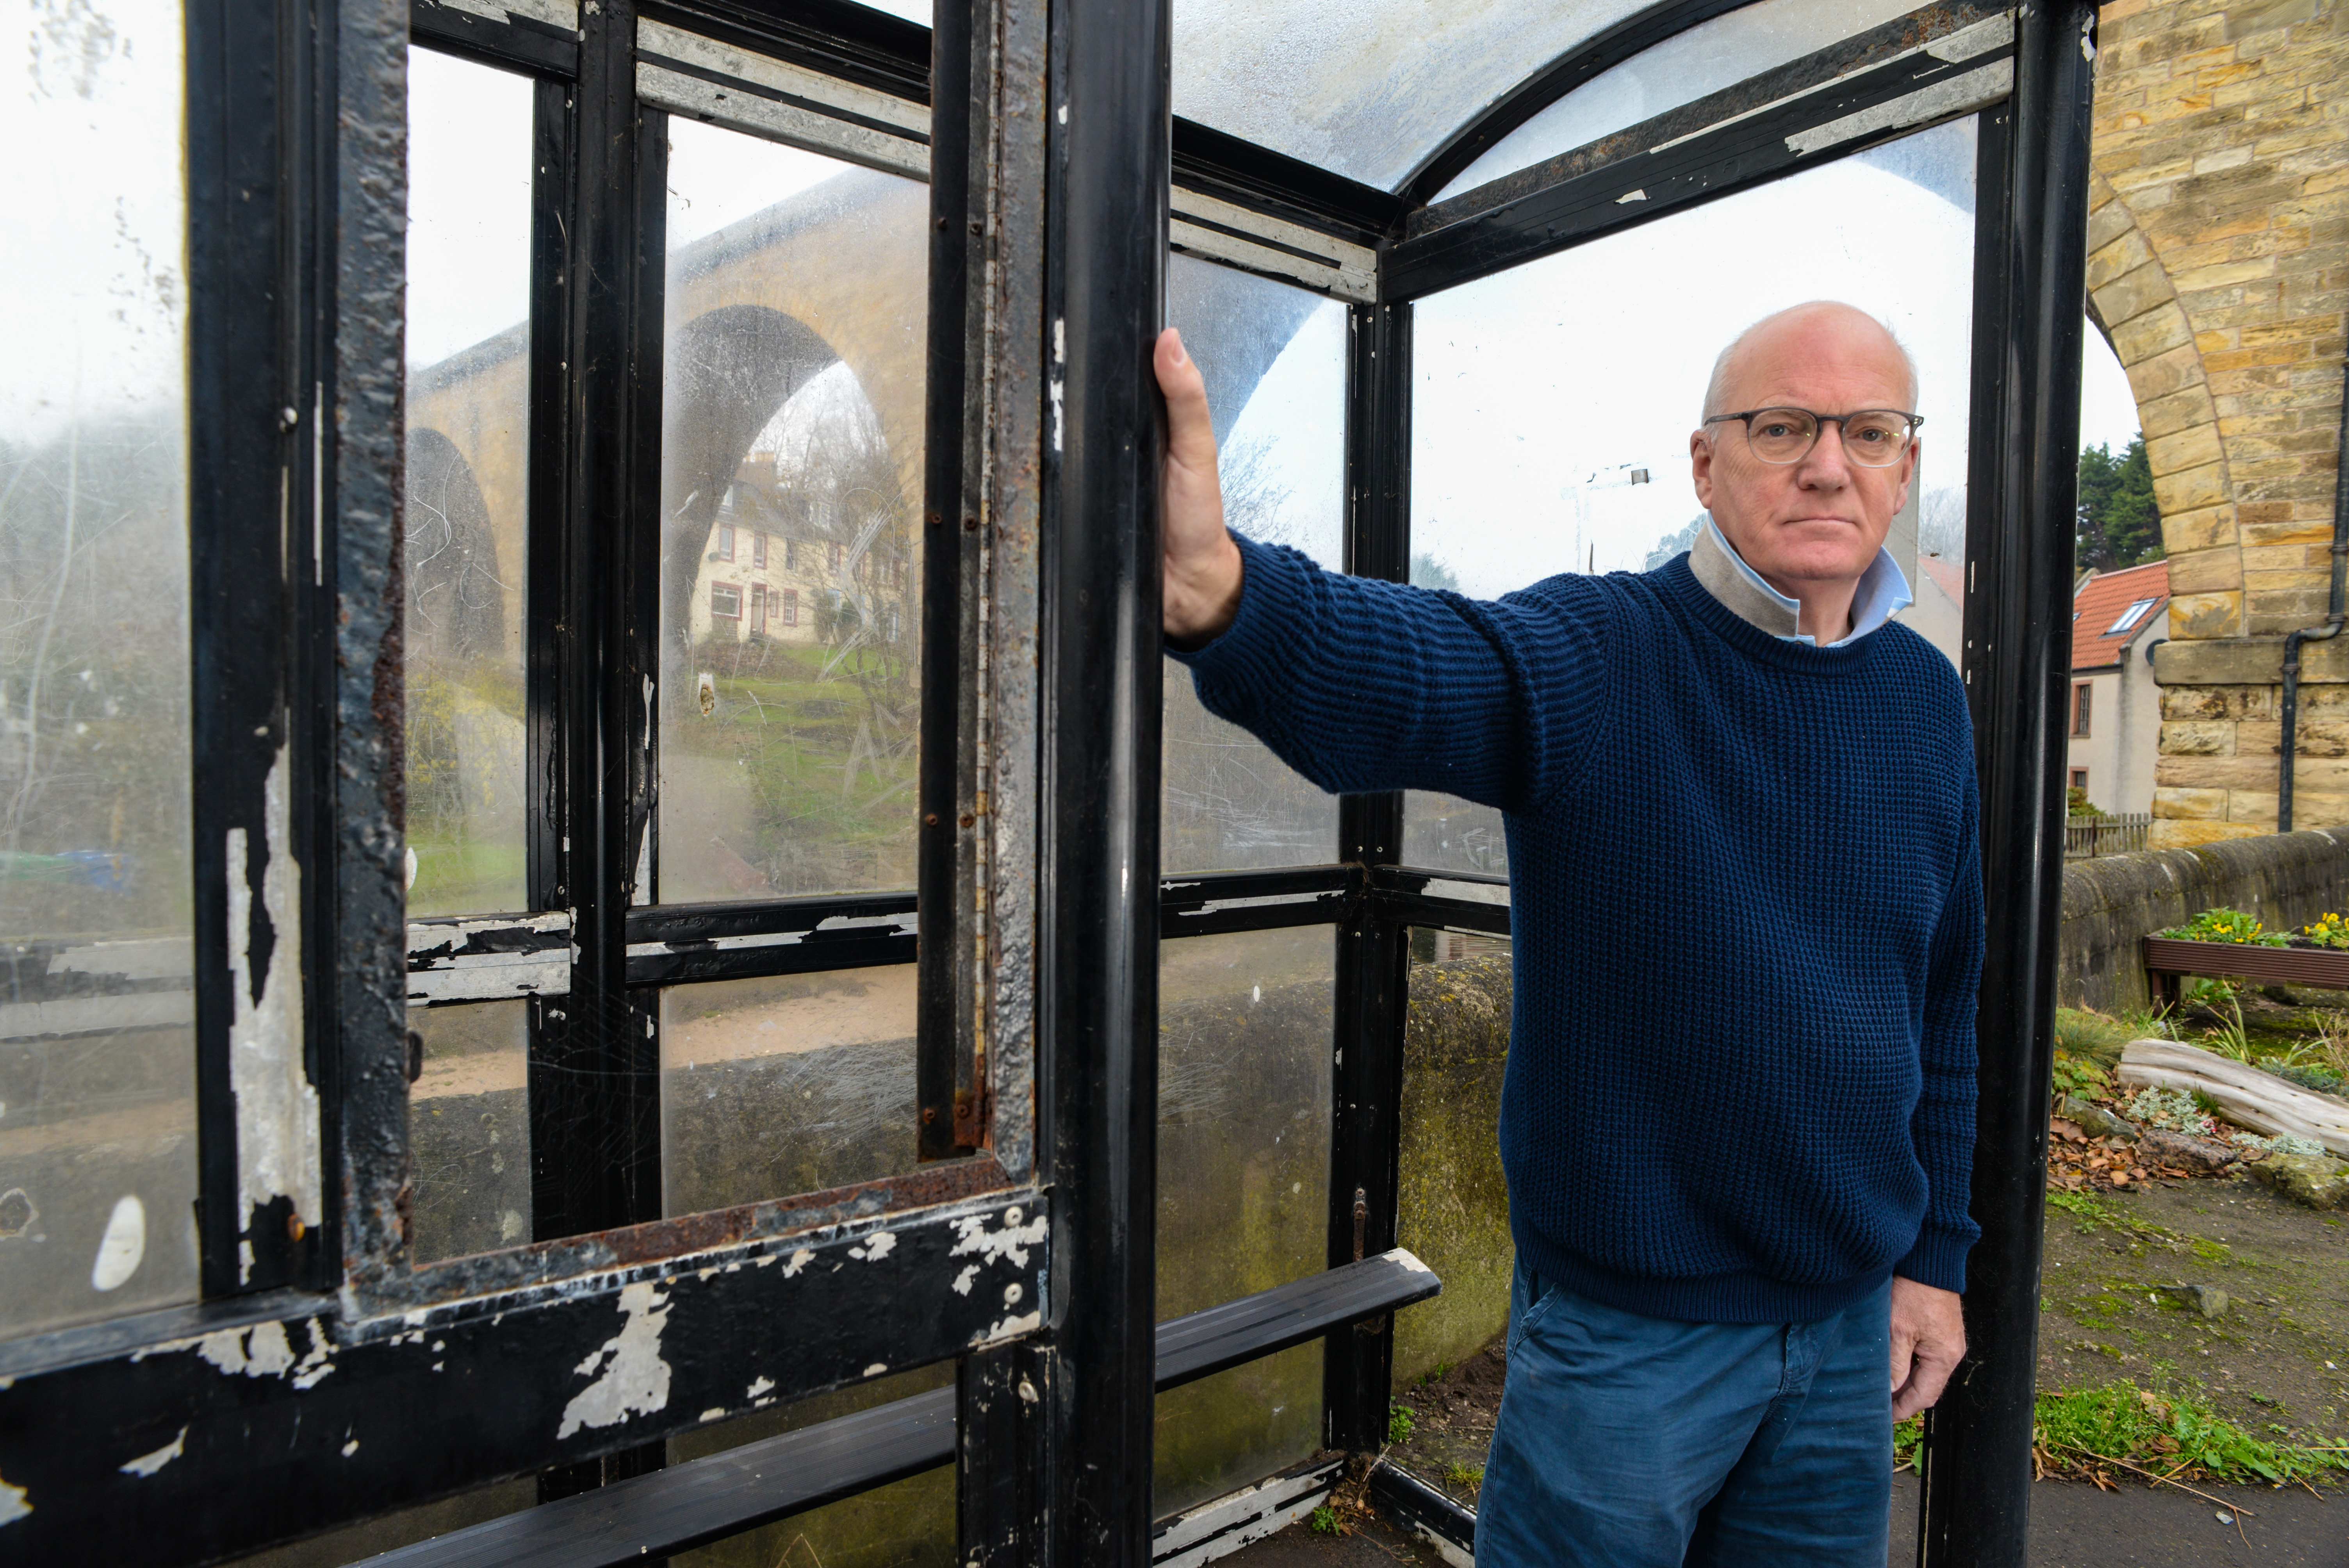 Local resident Eddie Hagan standing in the vandalised bus-stop which he has been campaigning to have repaired for over a year. Lower Largo.